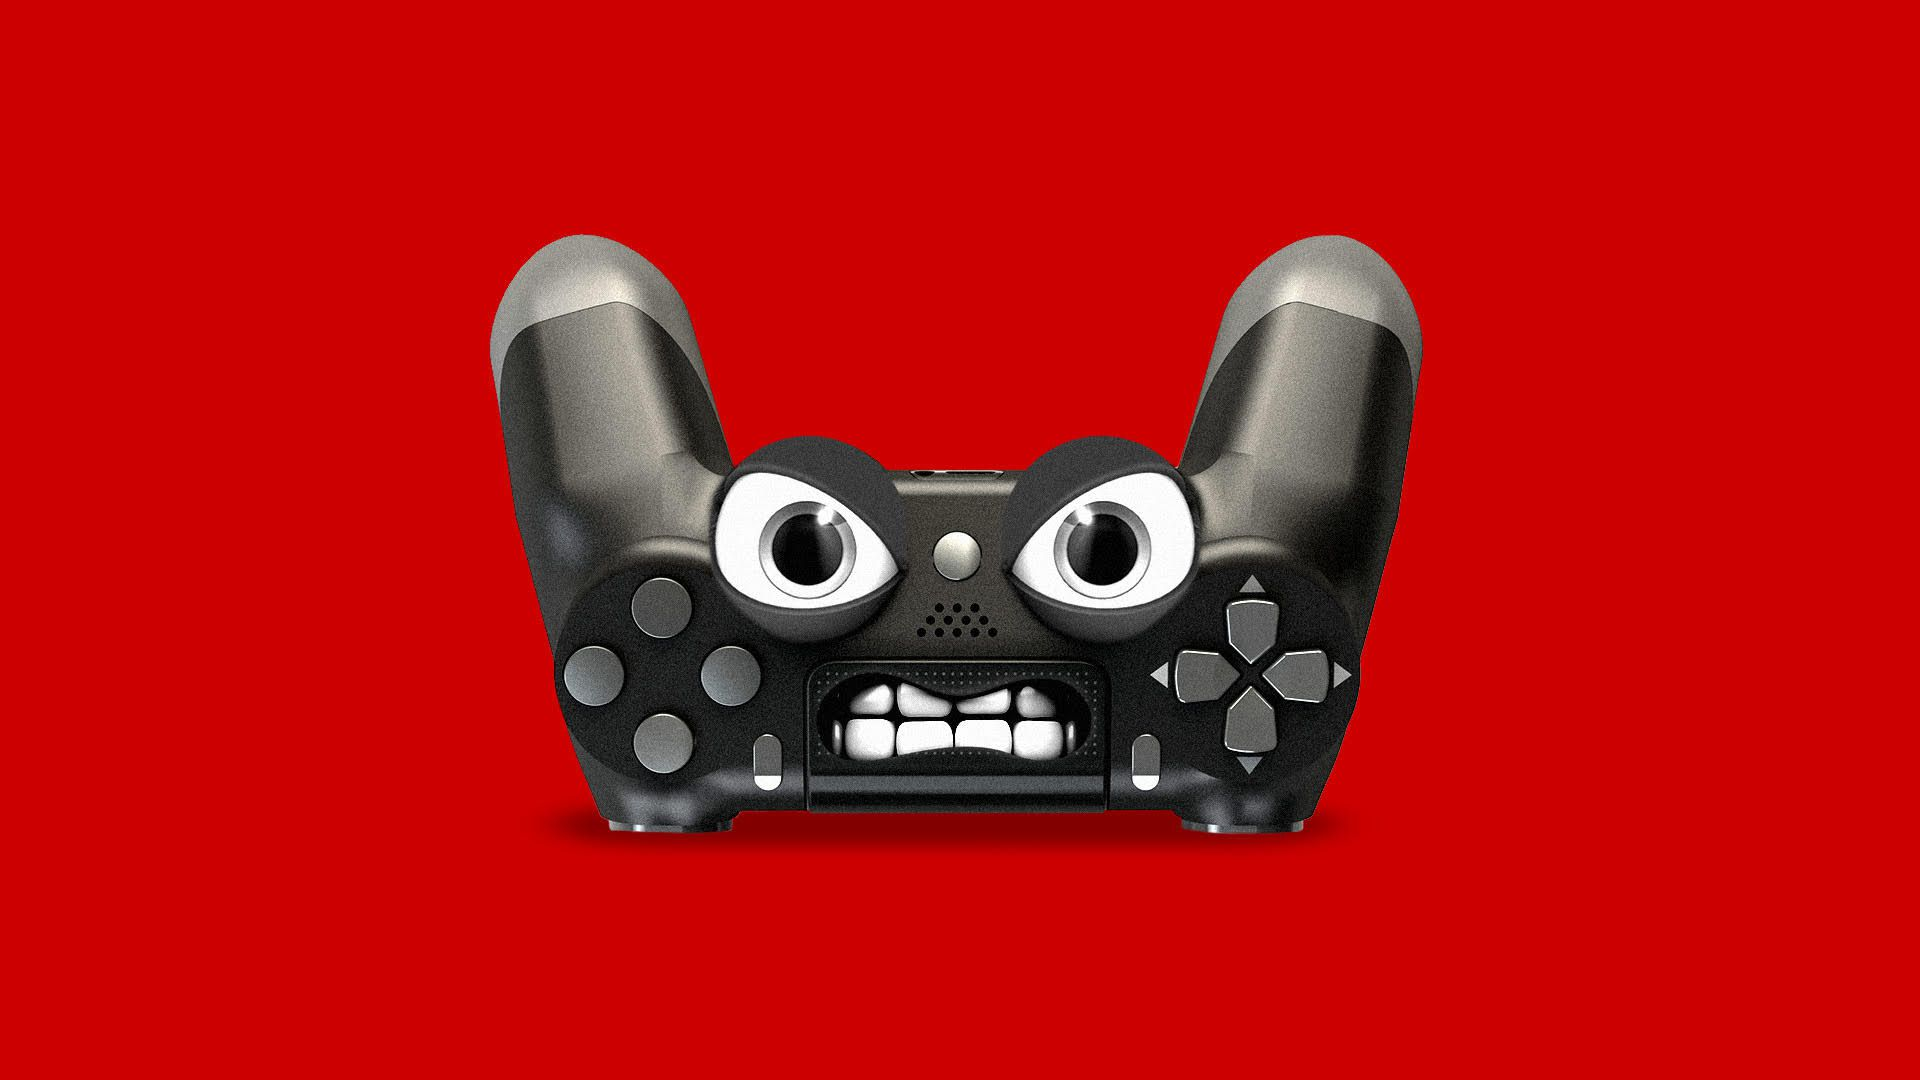 A video game controller with an angry face